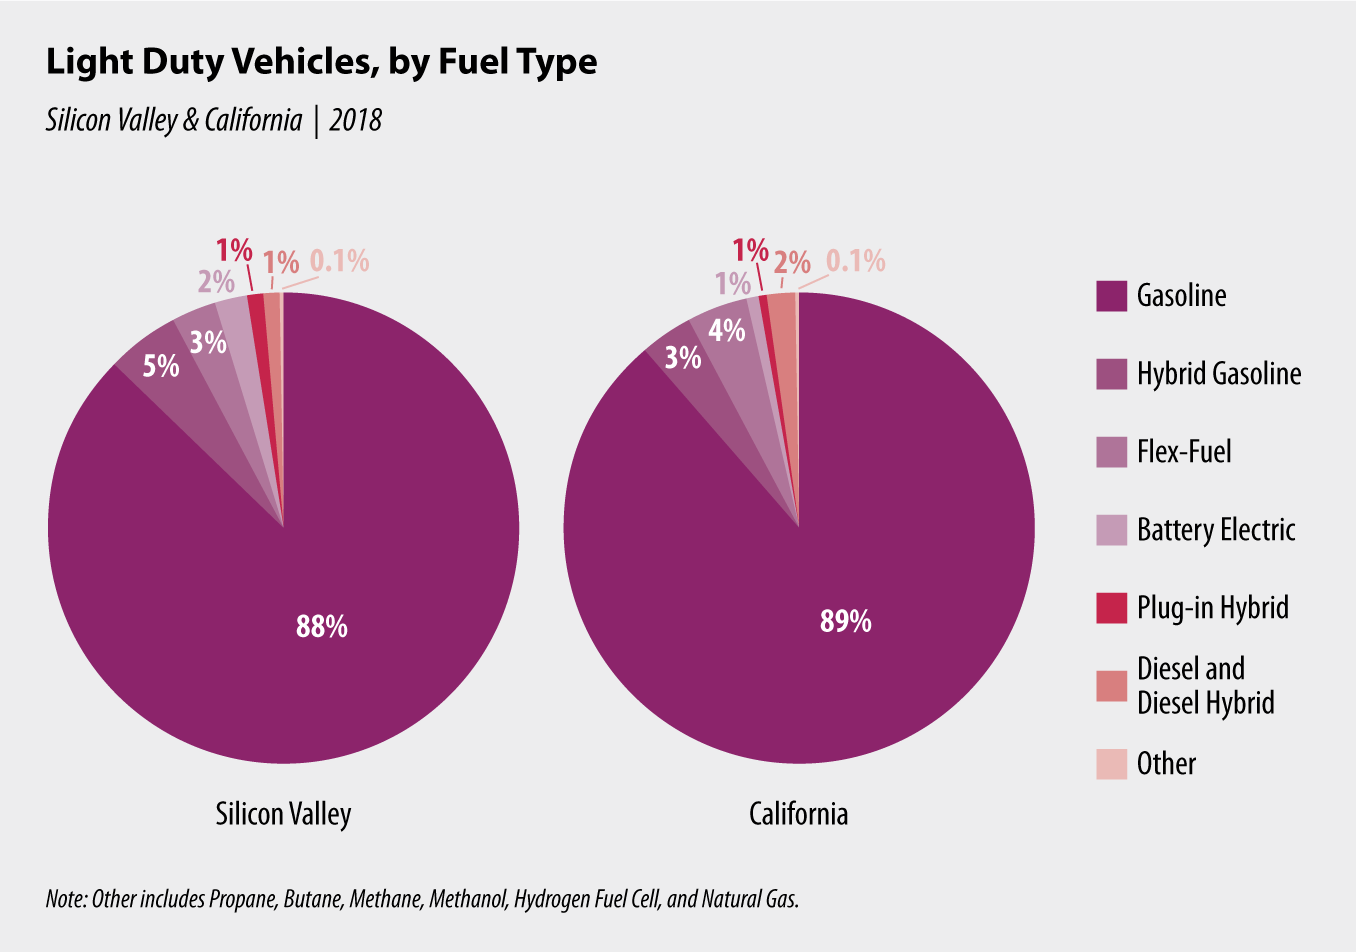 Chart 1: Light Duty Vehicles, by Fuel Type